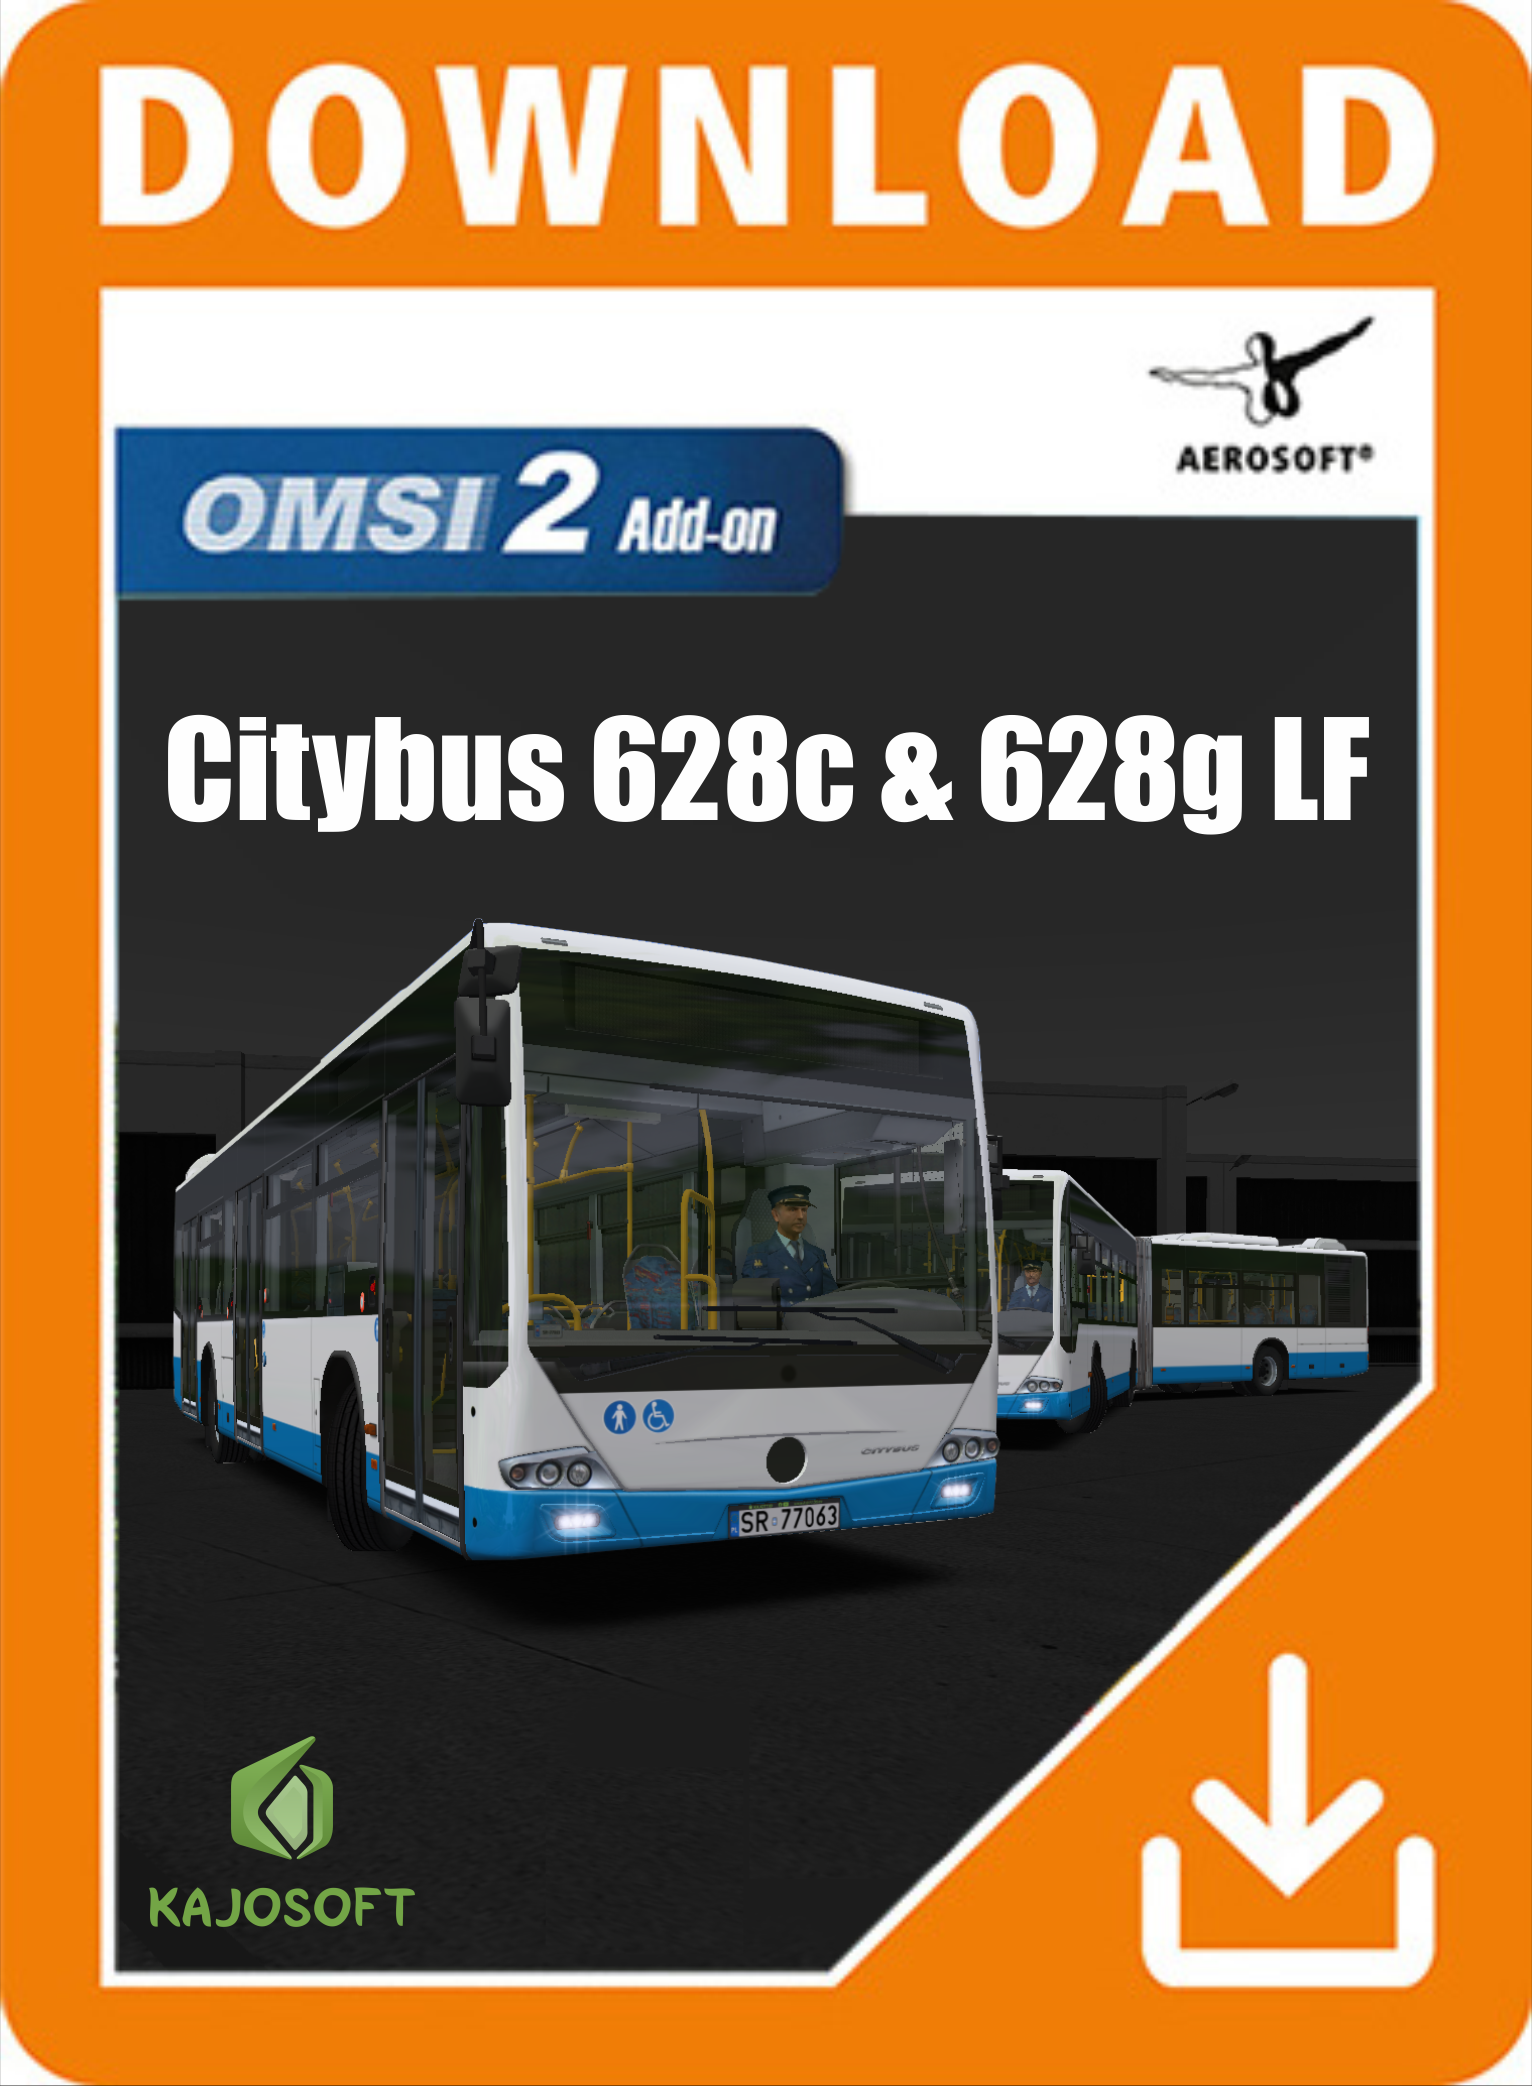 Packshot OMSI 2 Add-on Citybus 628c 628g LF